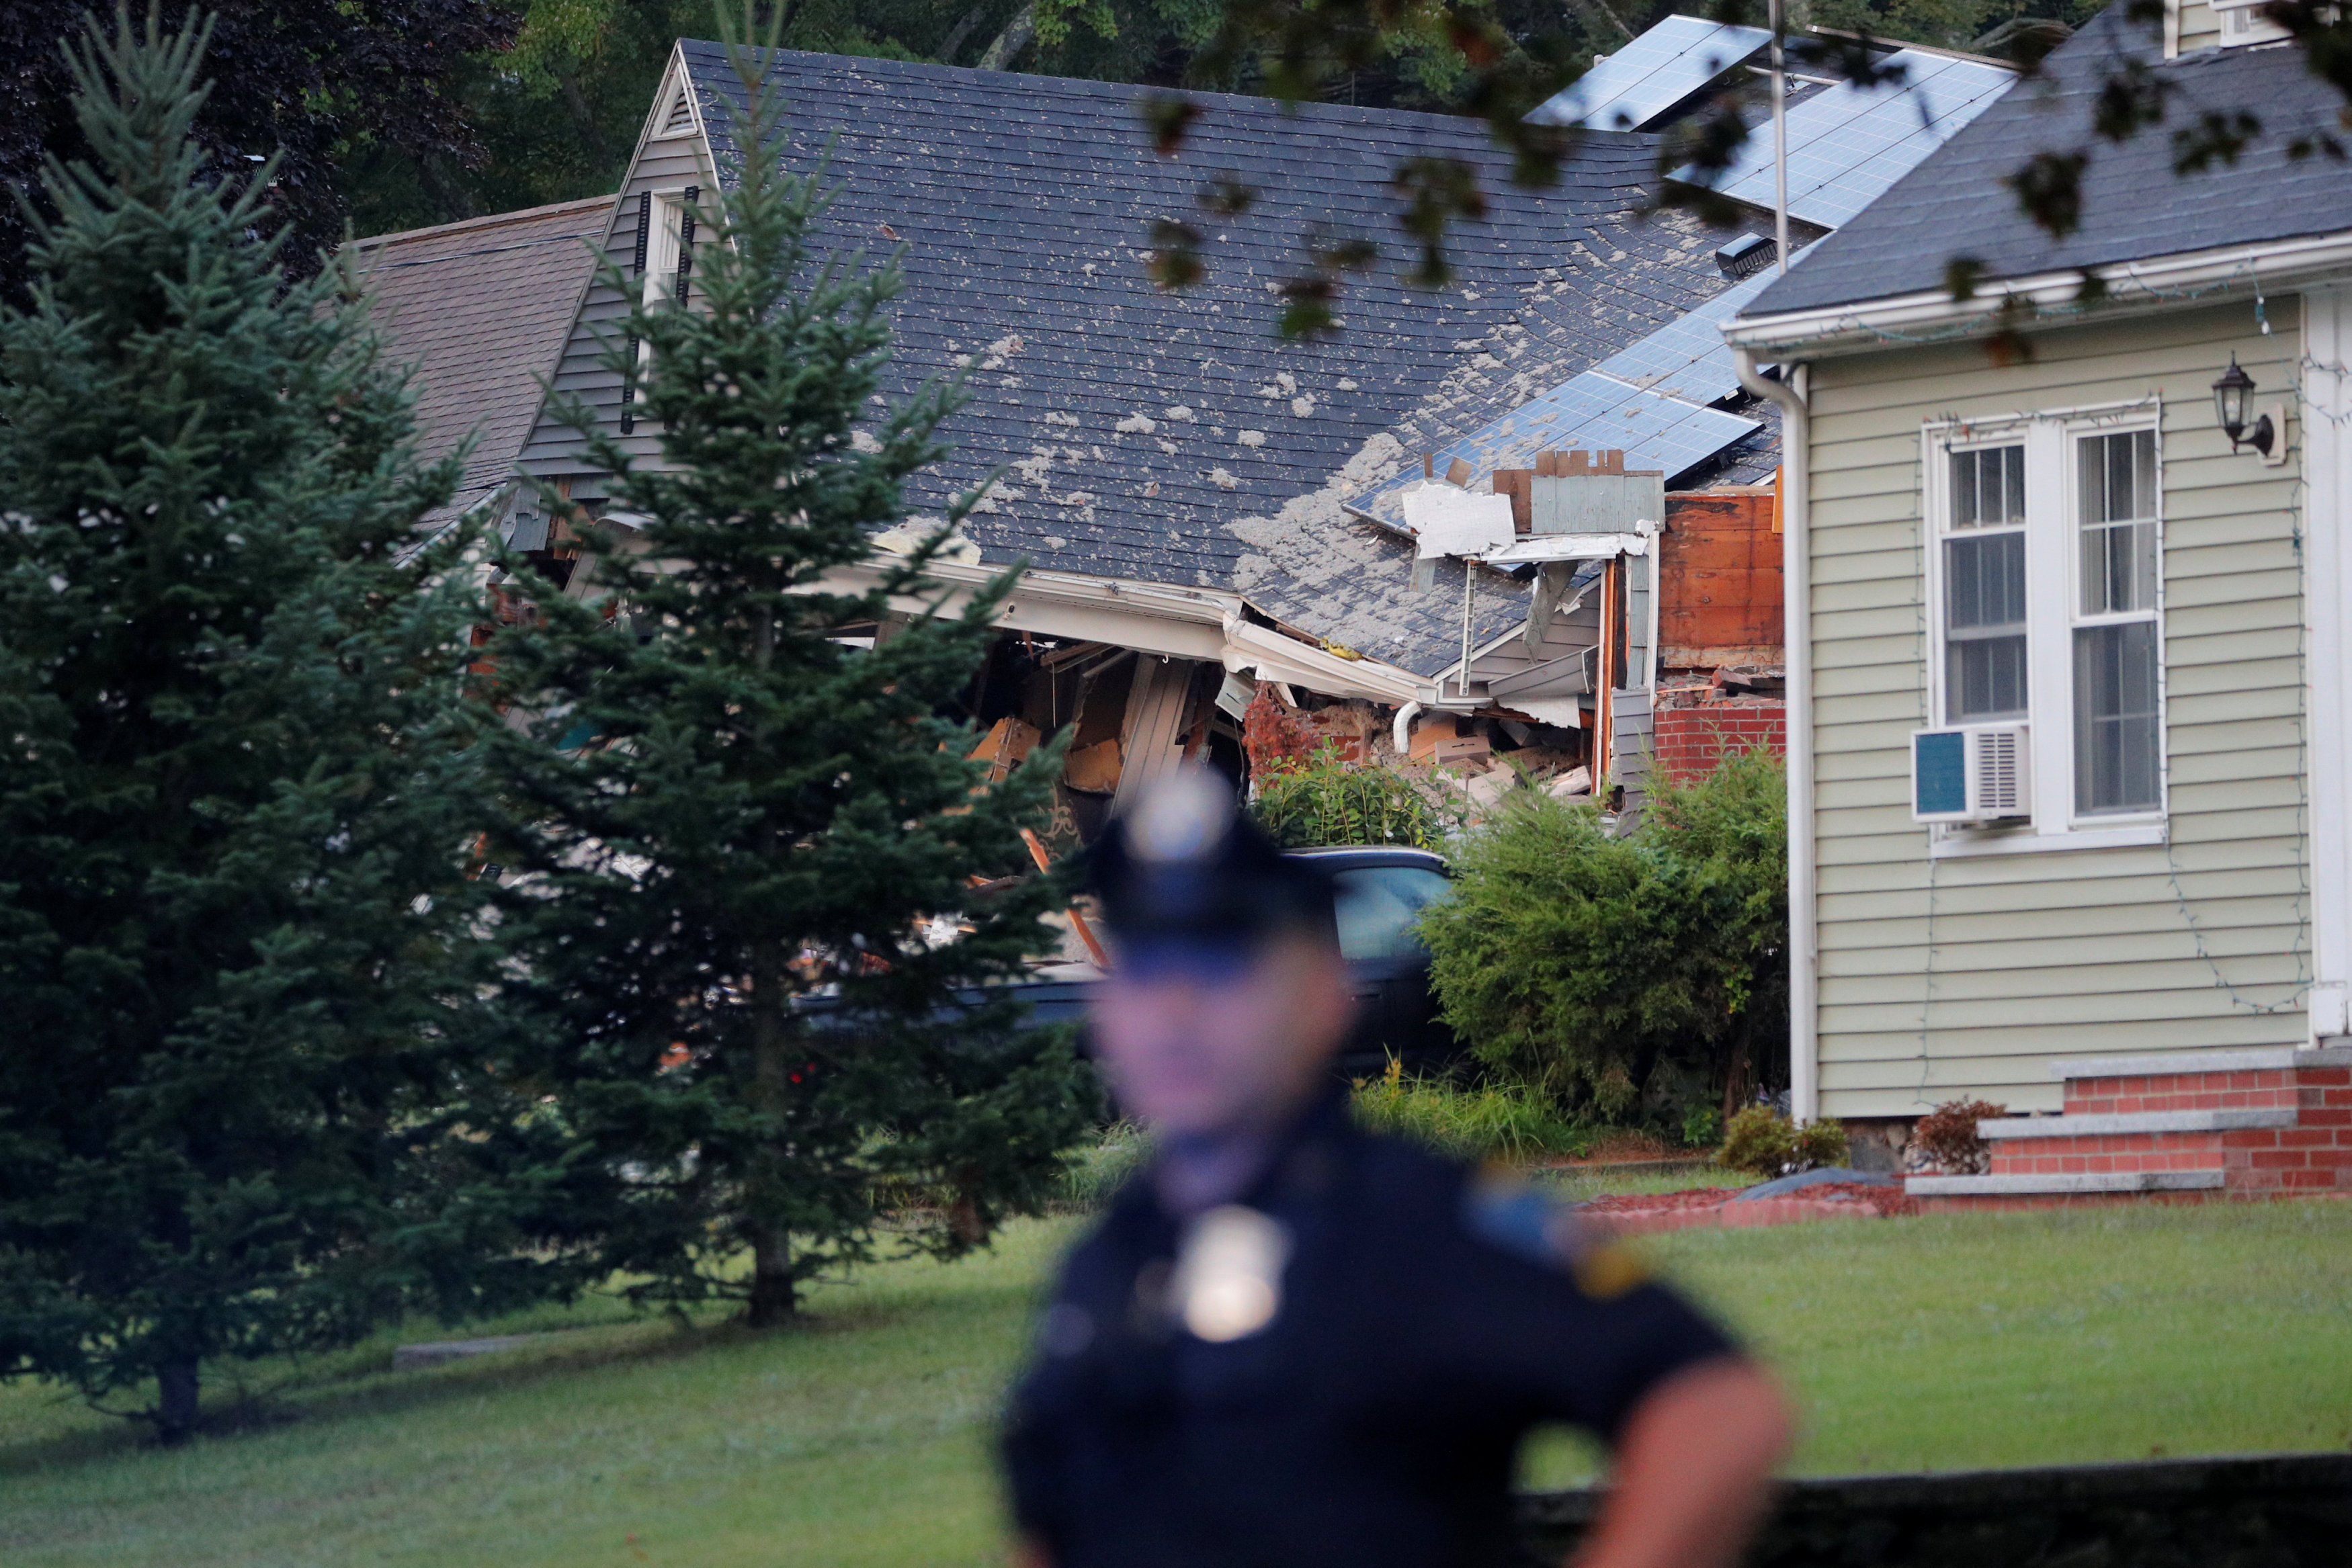 A police officer stands outside a home where a man died in a series of gas explosions in Lawrence, Massachusetts, U.S., September 14, 2018. REUTERS/Brian Snyder